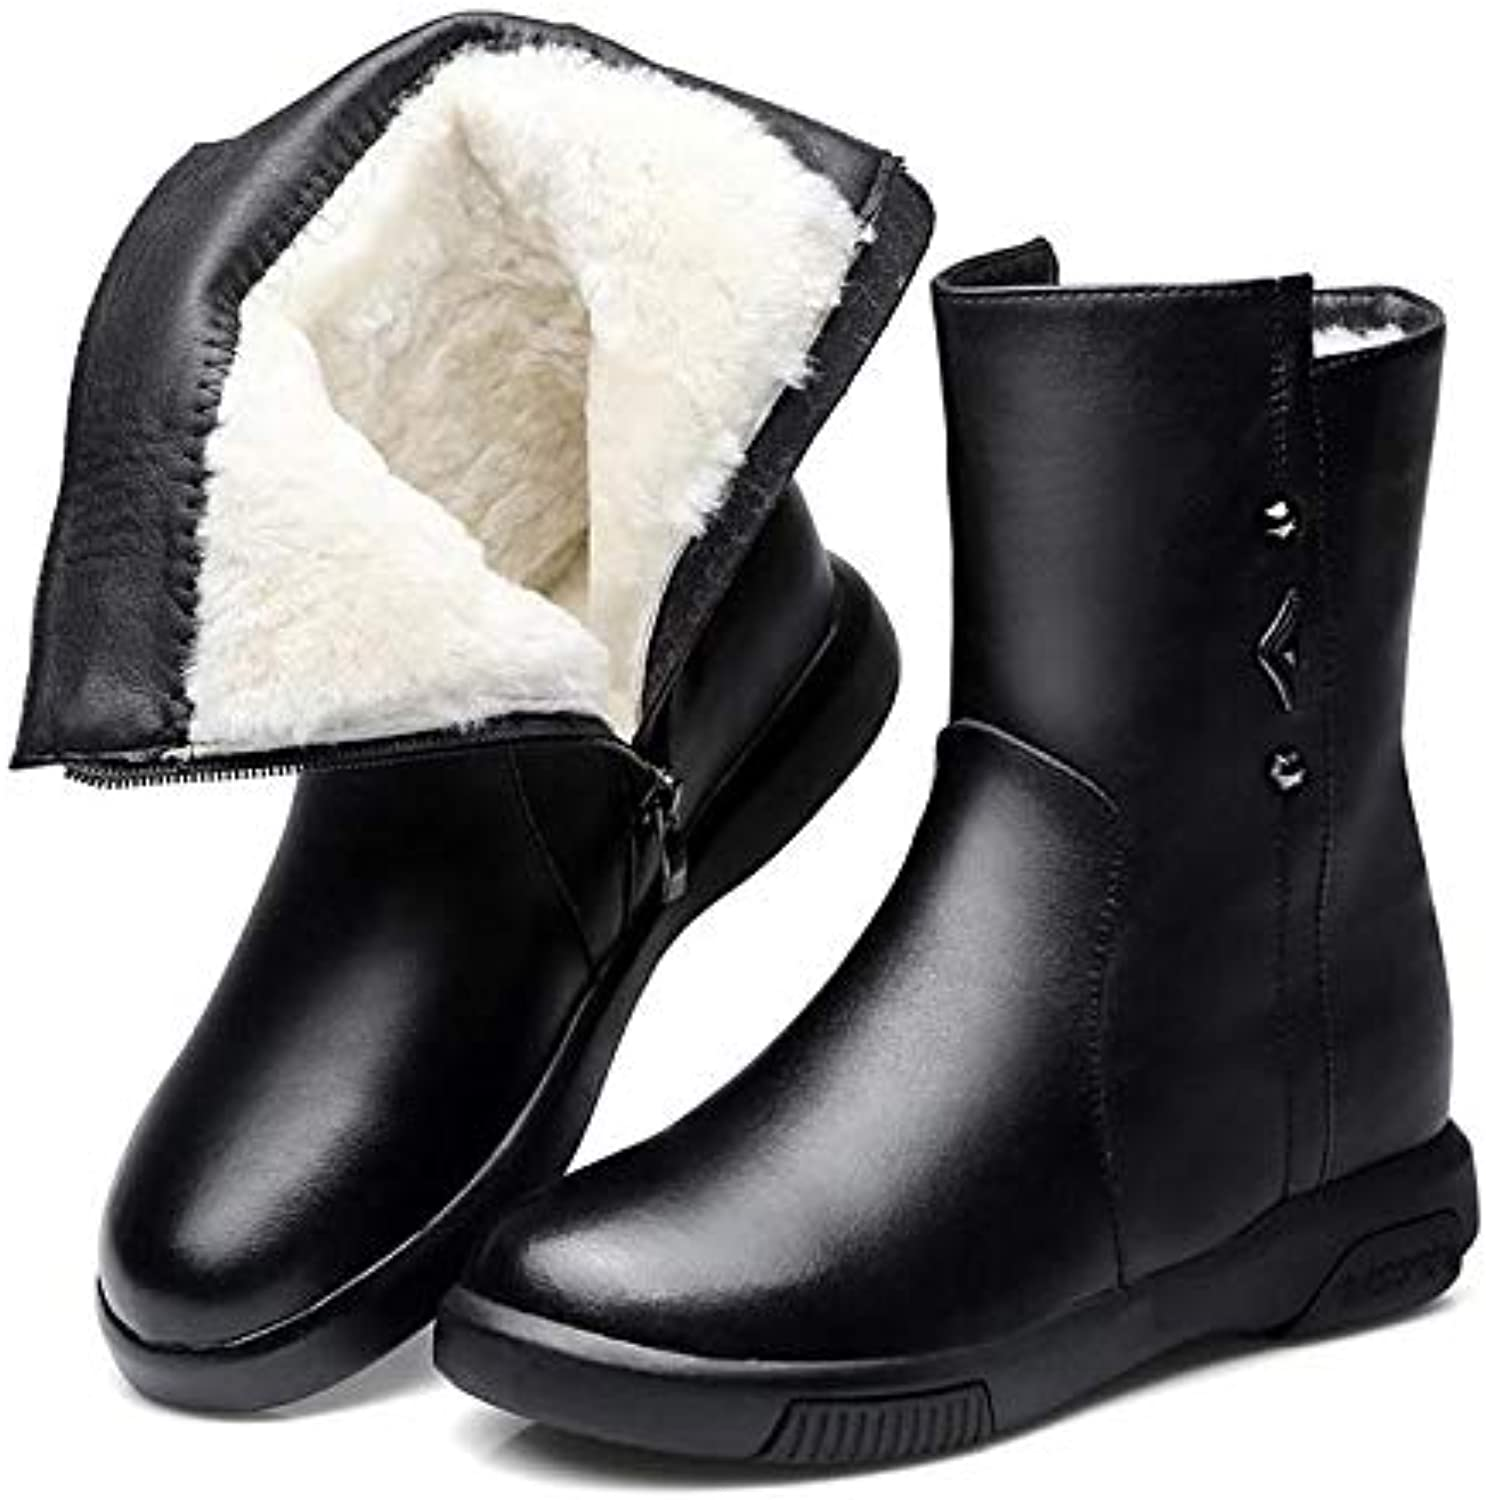 DDL- Snow Boots   2018 Besteselling Real Cowhide Leather Boots Flat Warm Comfort Wool shoes Women Boots Snow Boots Winter Martin Boots